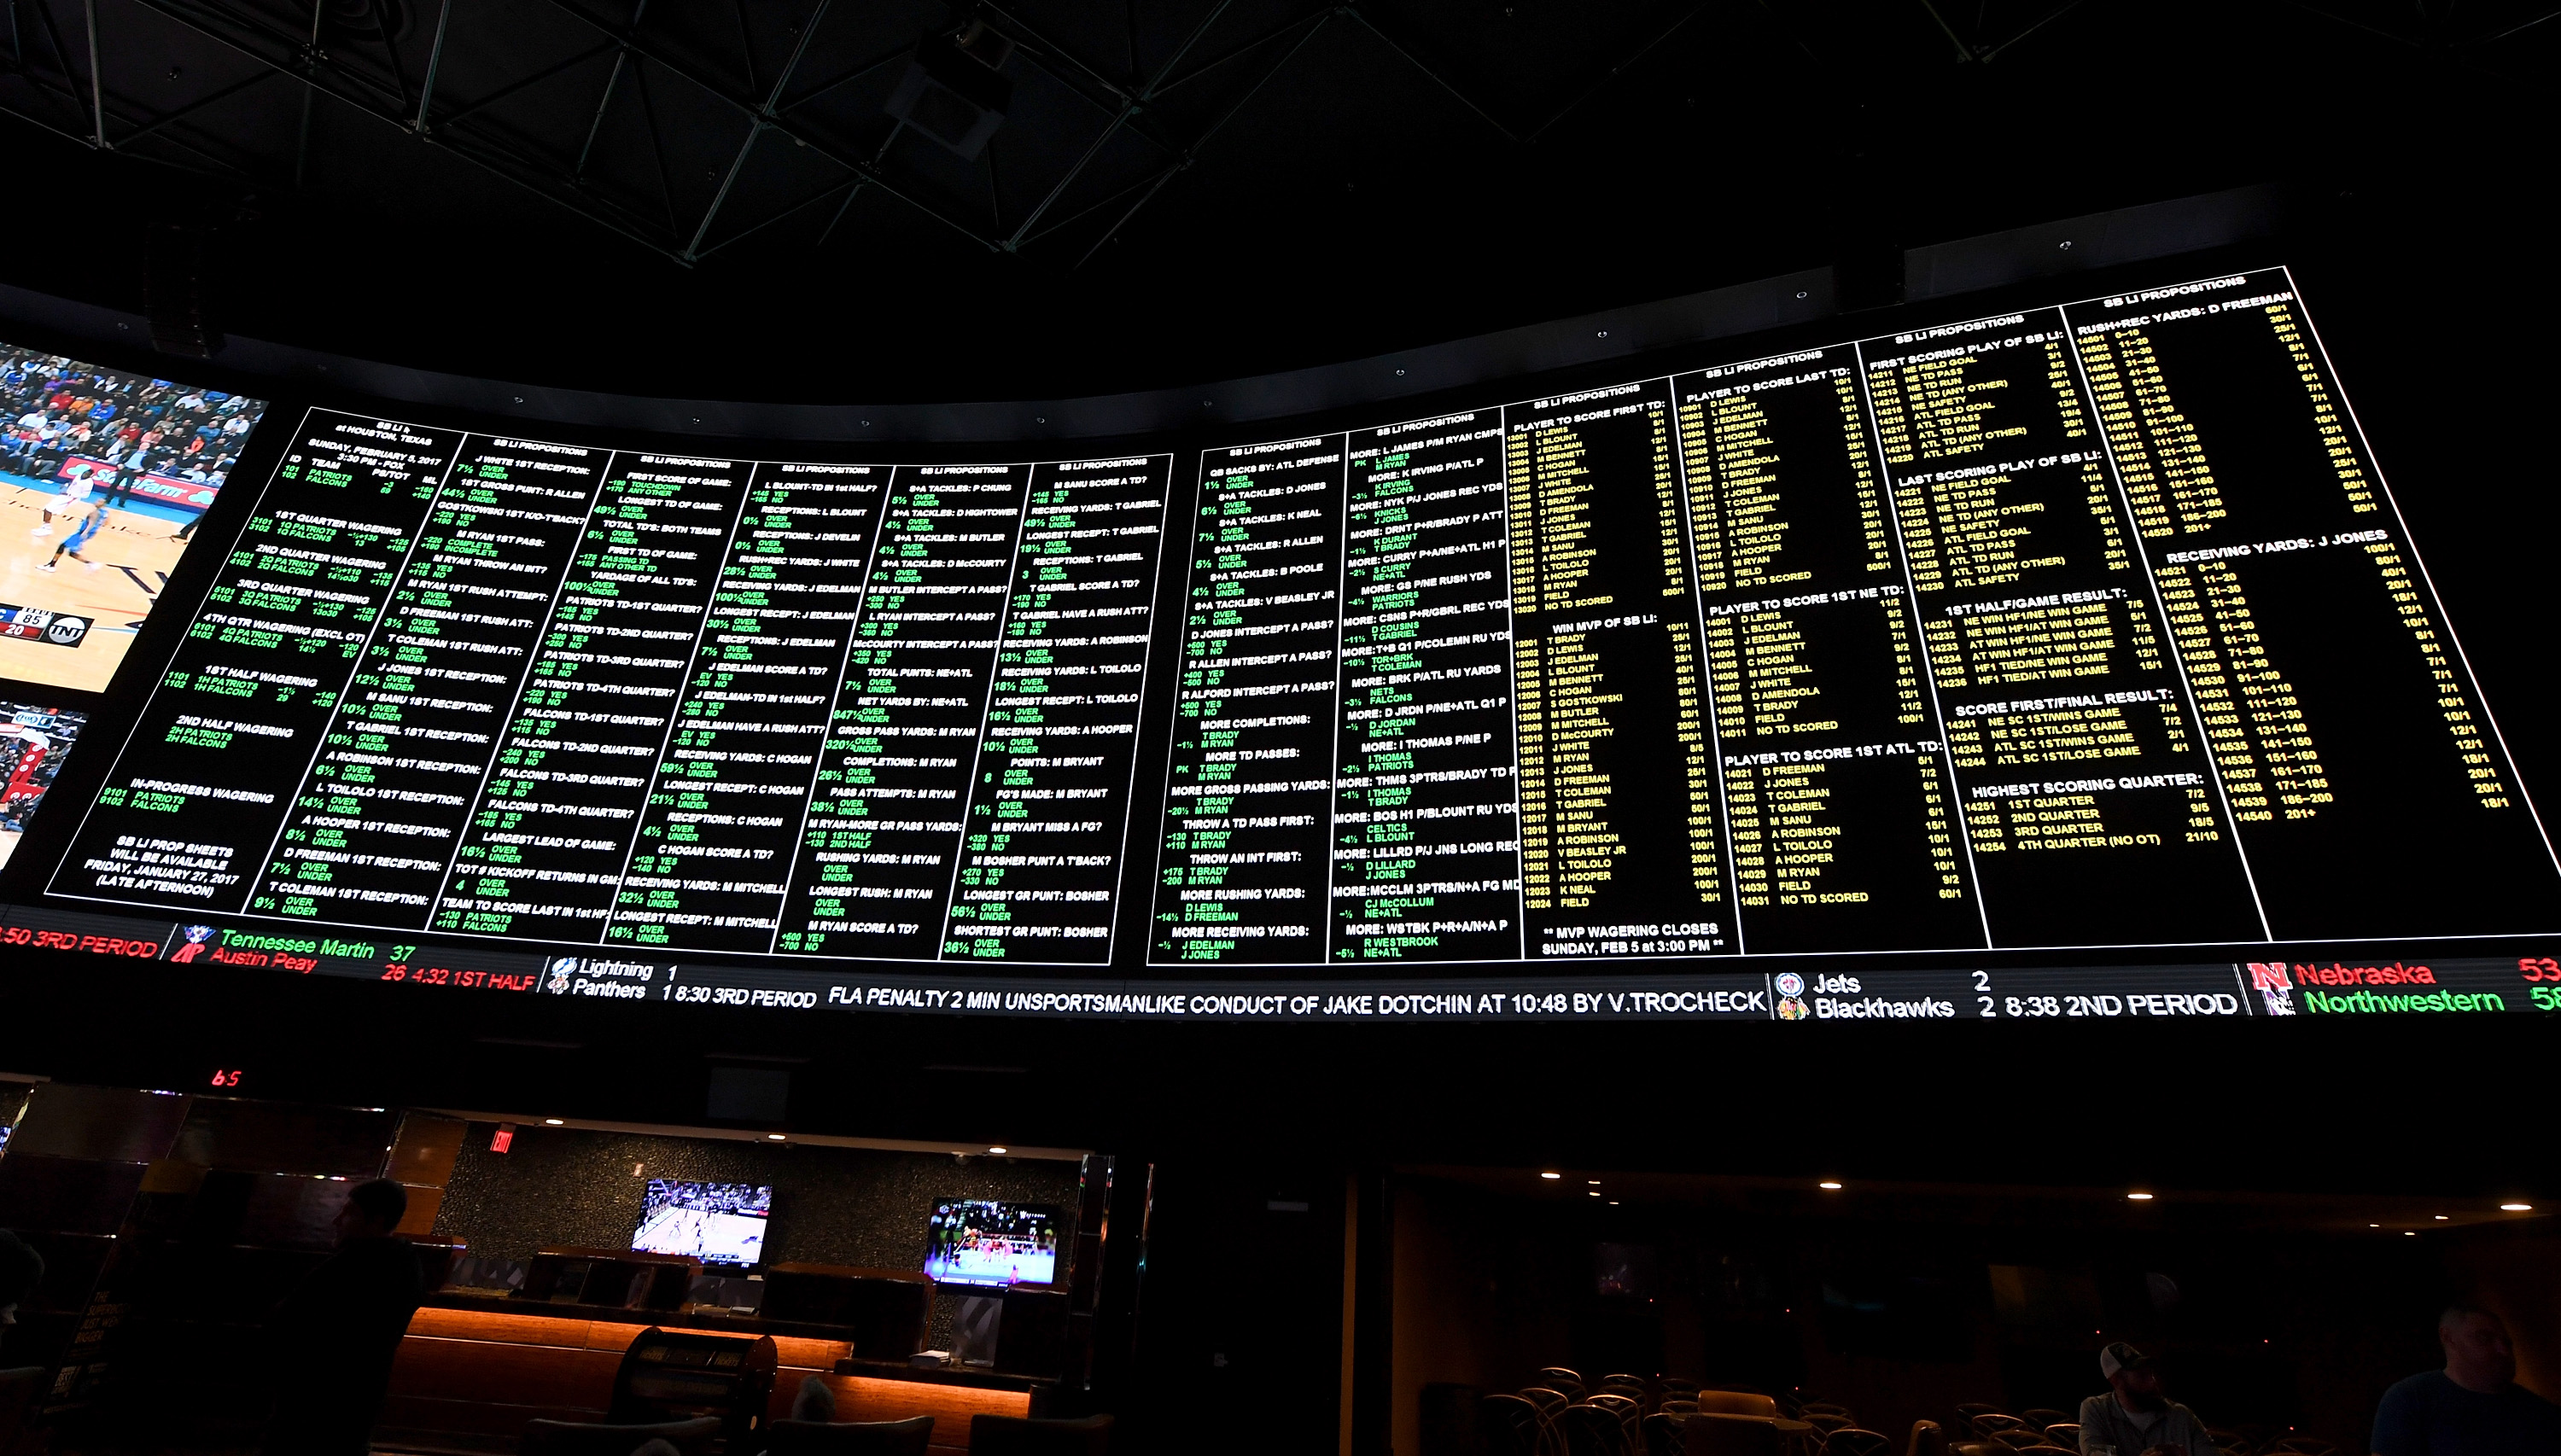 how much is bet on super bowl, total money bet on super bowl, super bowl gambling, money bet on super bowl, sports gambling legal